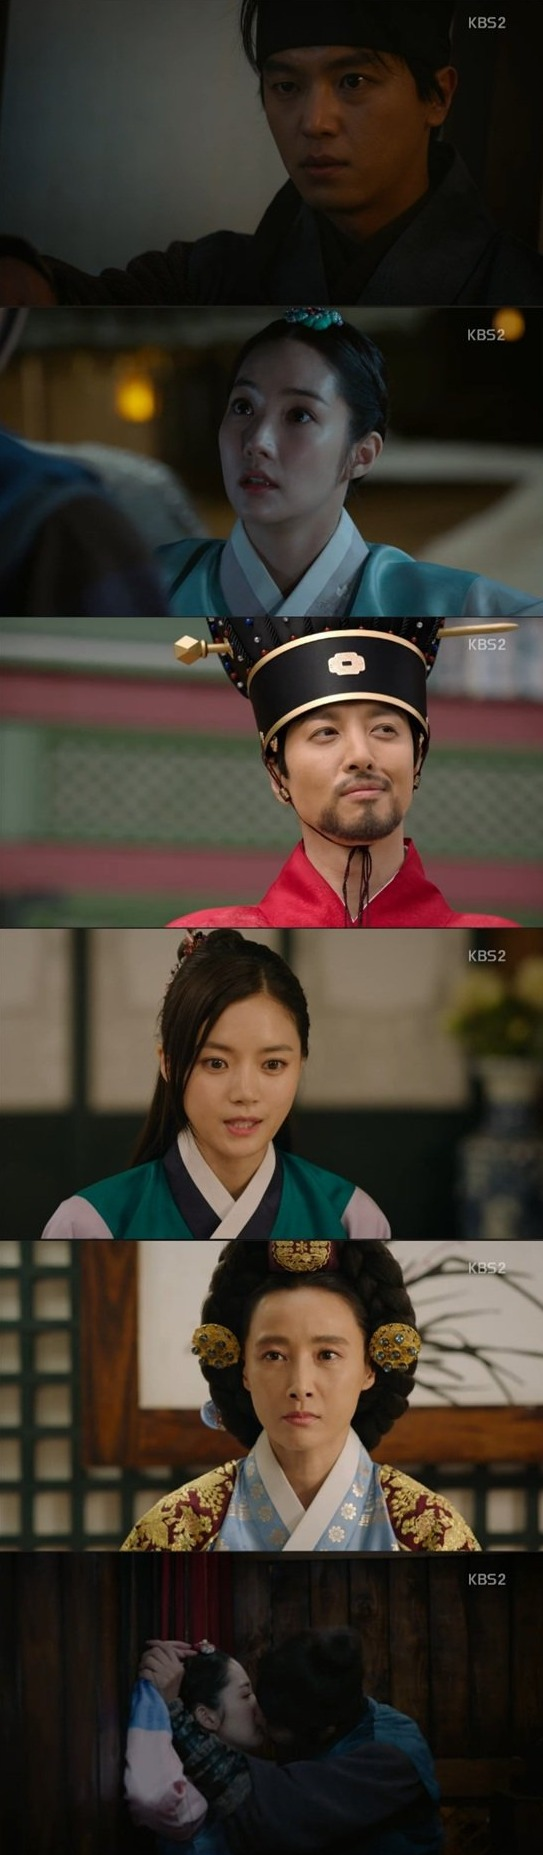 [Spoiler] Added episode 5 captures for the Korean drama 'Queen for 7 Days'